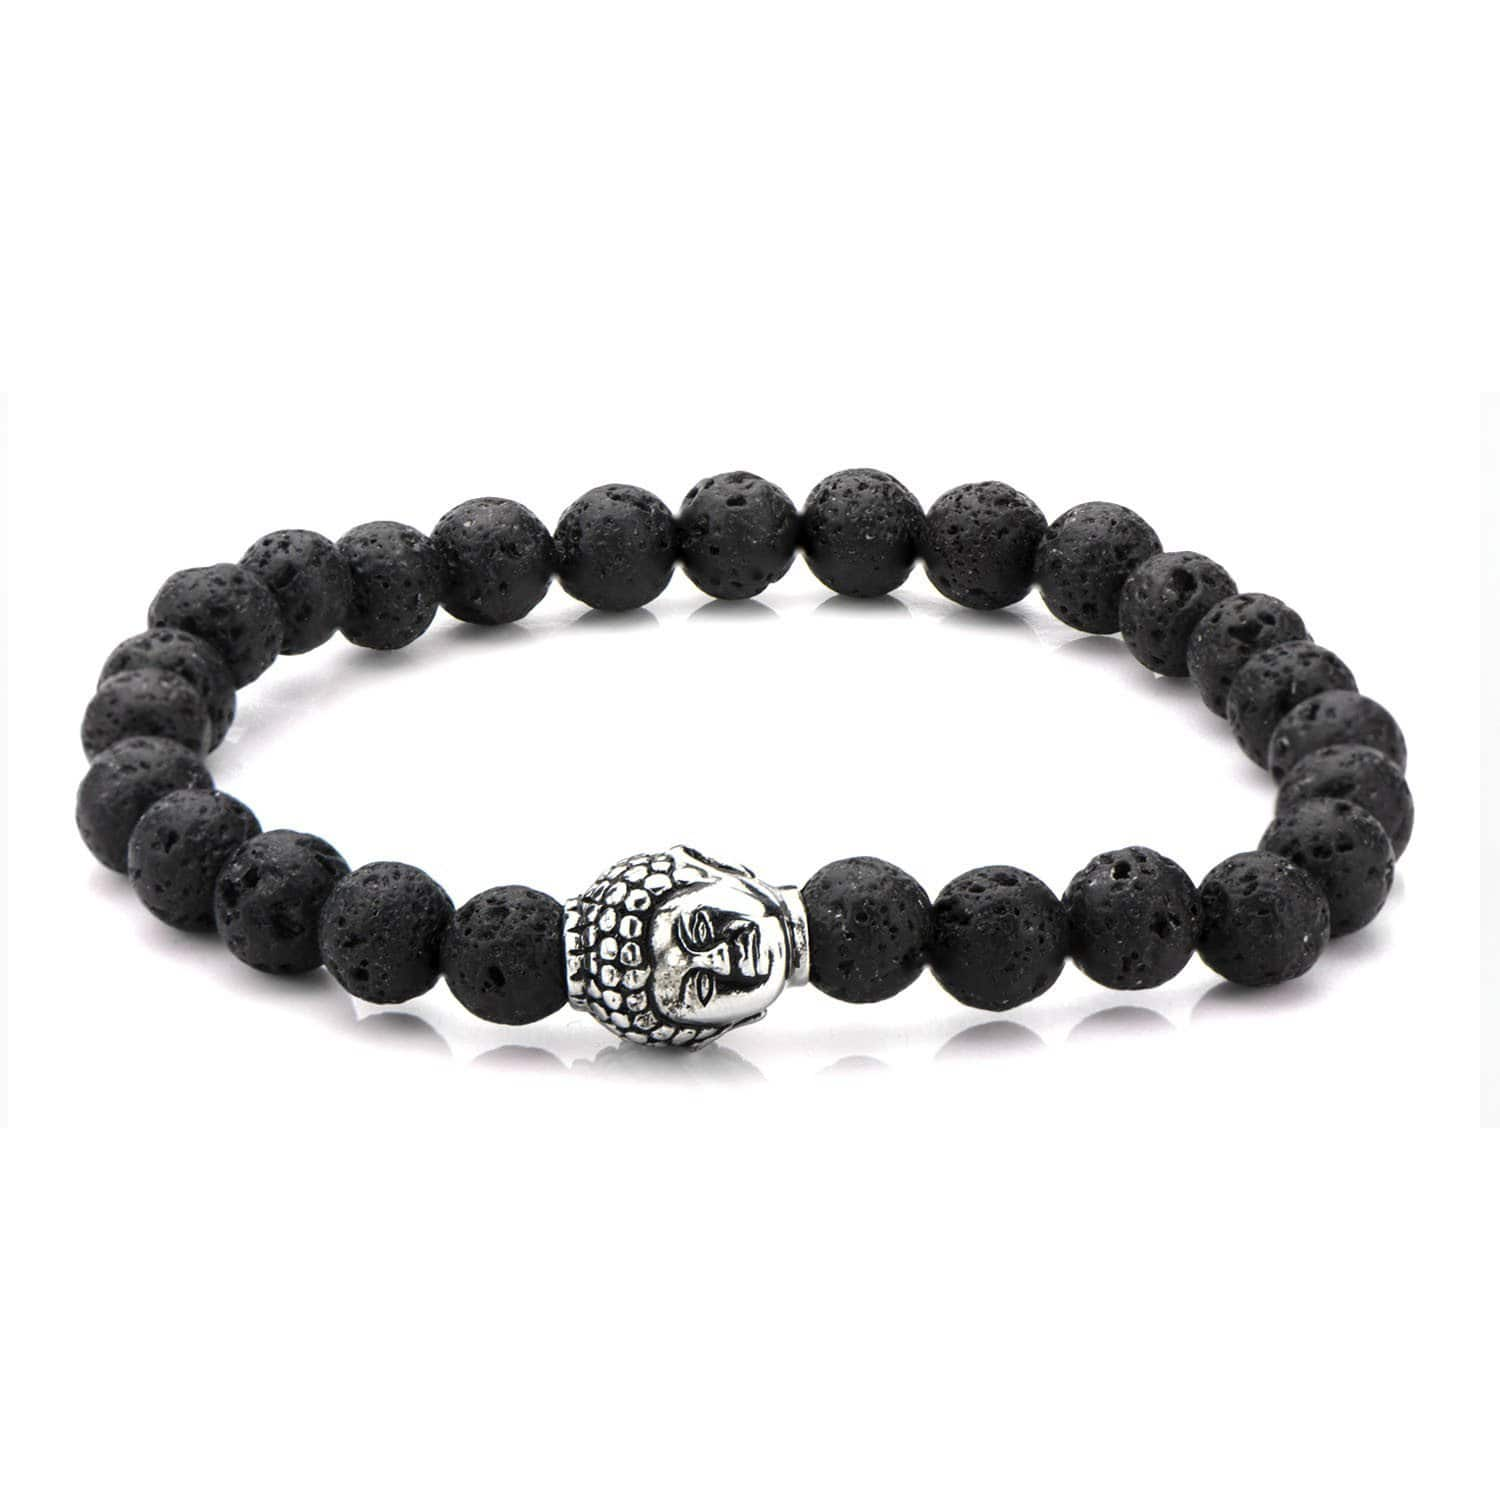 Silver Stainless Steel Buddha on Black Lava Satin Stretch Bracelet Bracelets